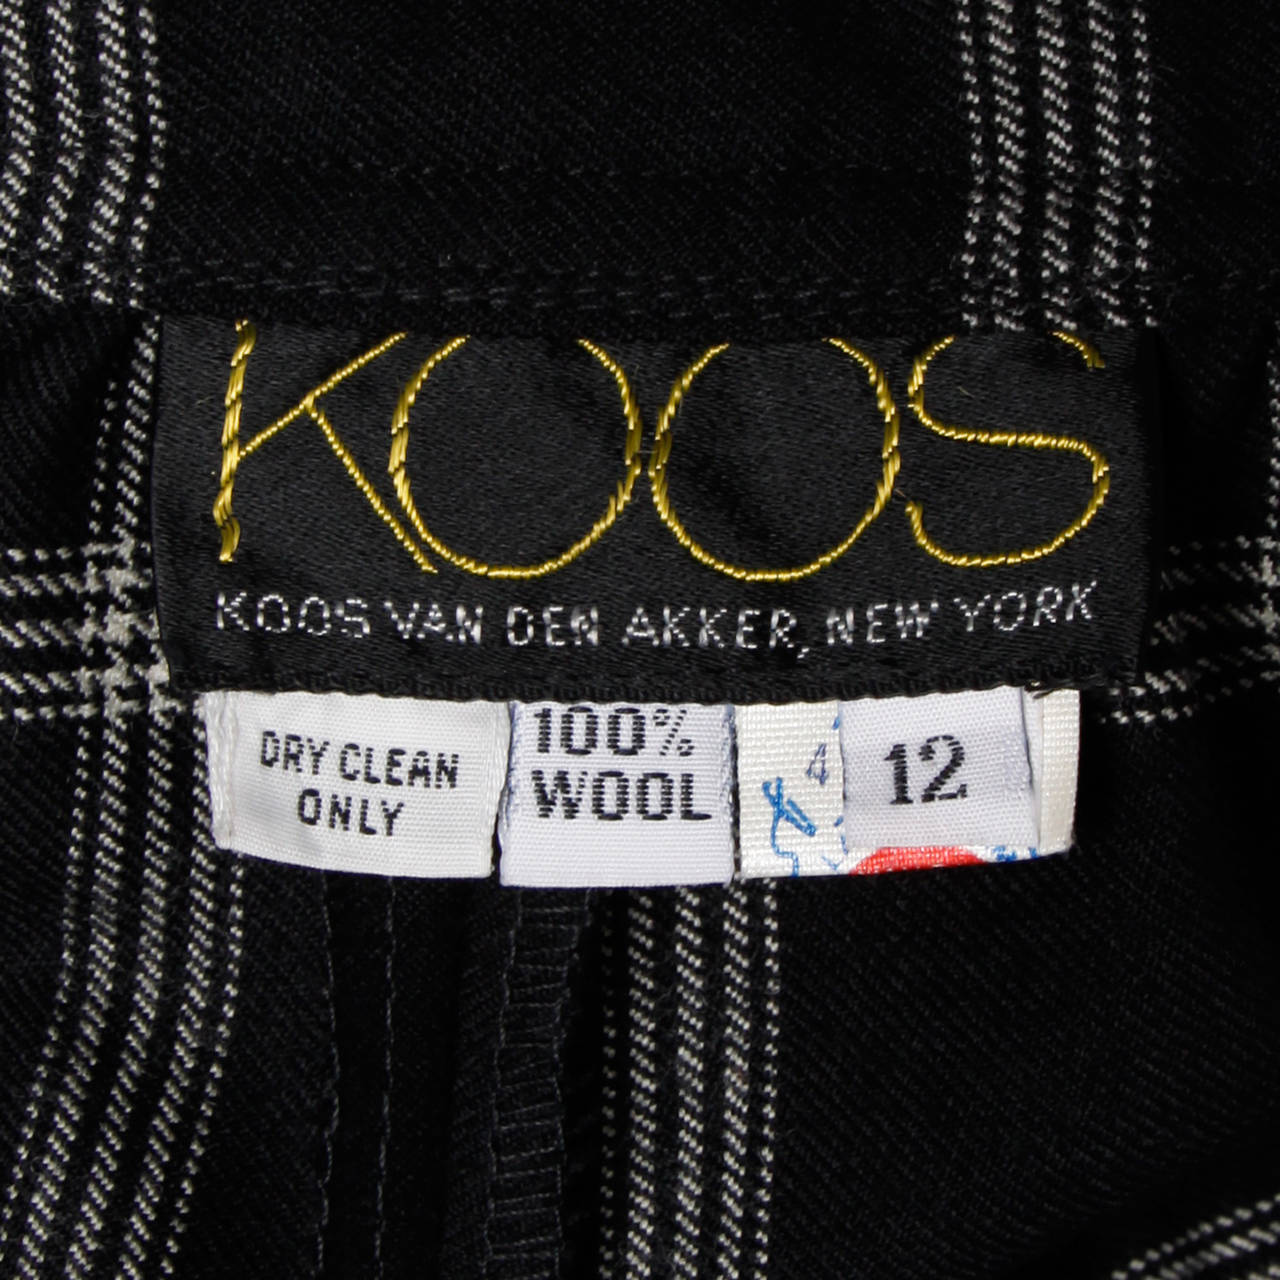 Koos Van Der Akker Vintage Black + White Plaid Wool Skirt 7